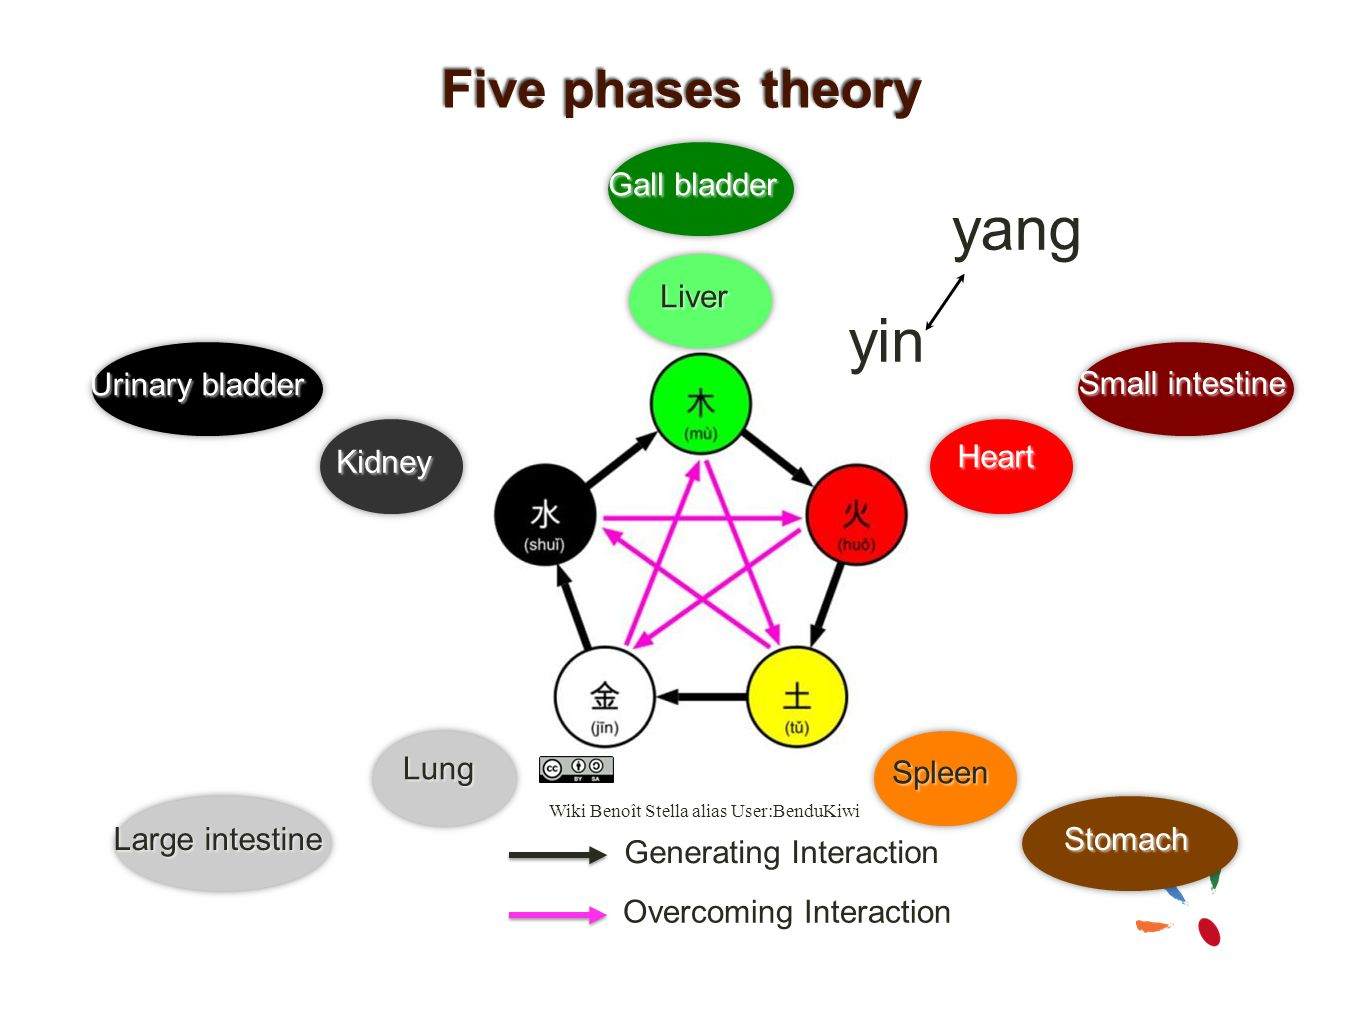 yang yin Five phases theory Gall bladder Liver Urinary bladder